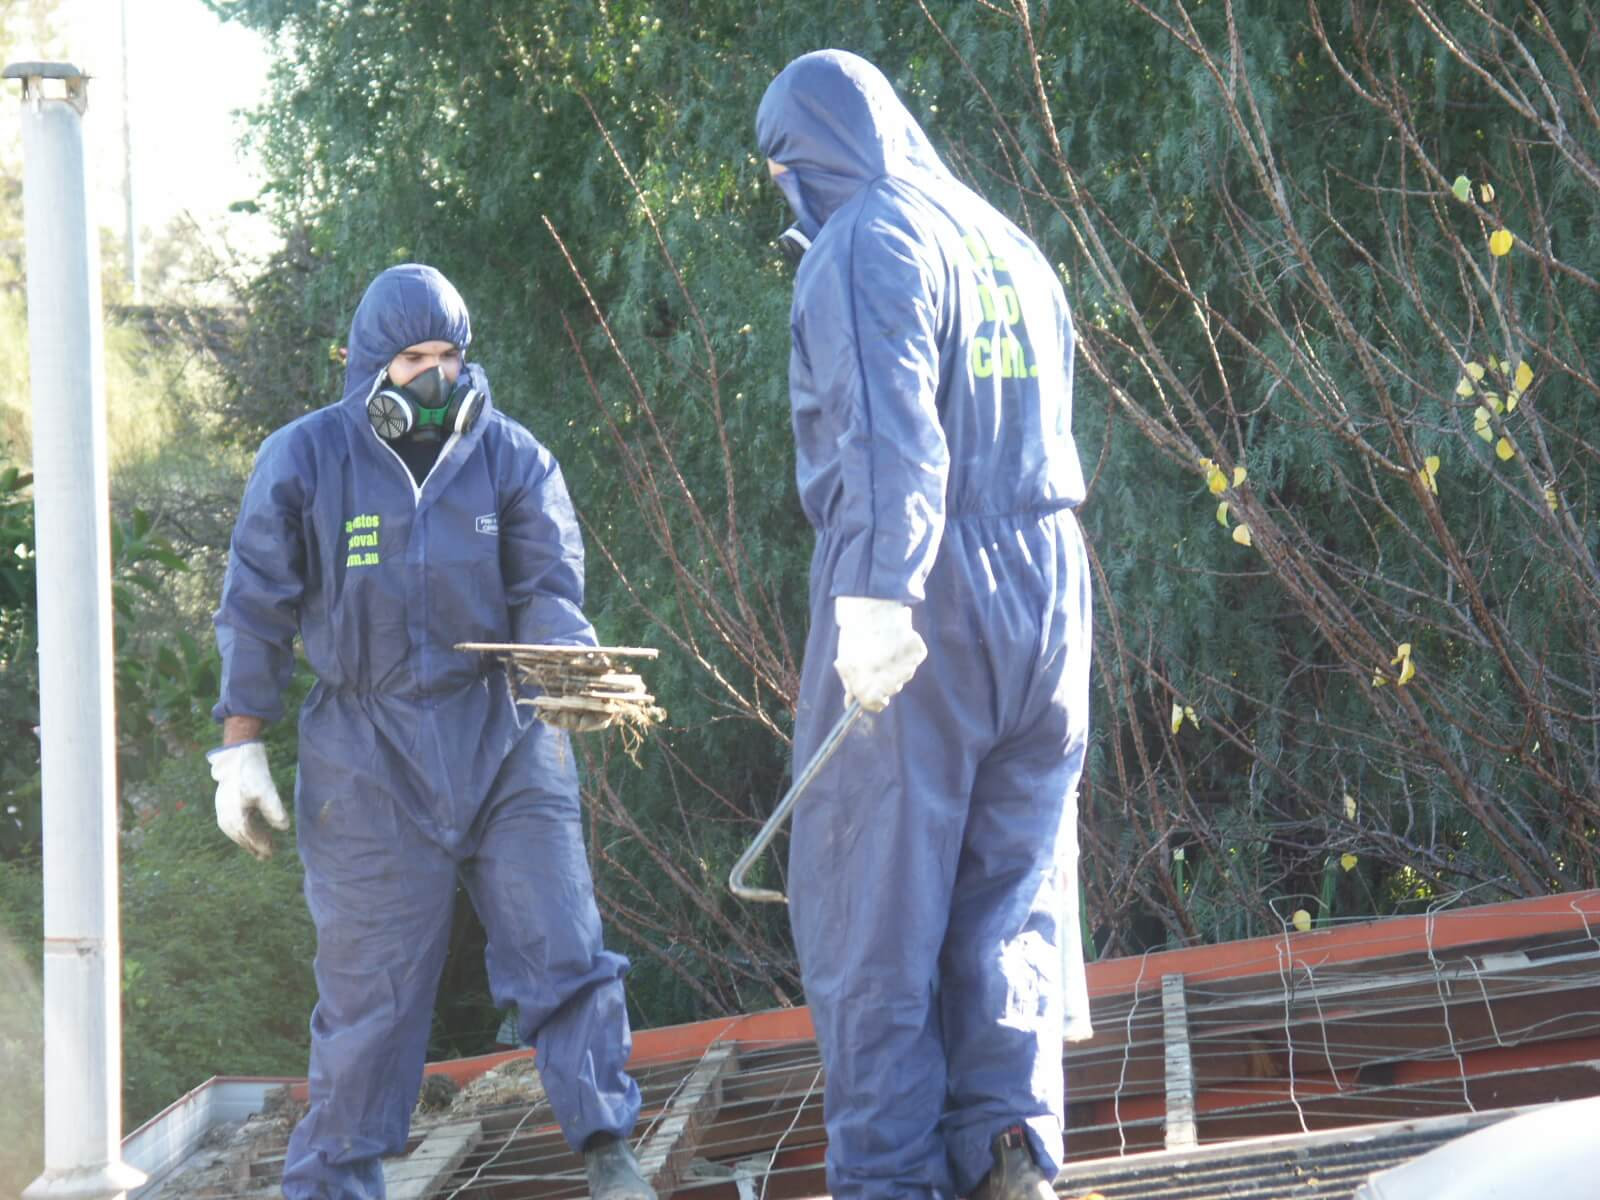 Suits And Breathing Apparatus Protect Asbestos Removal Workers